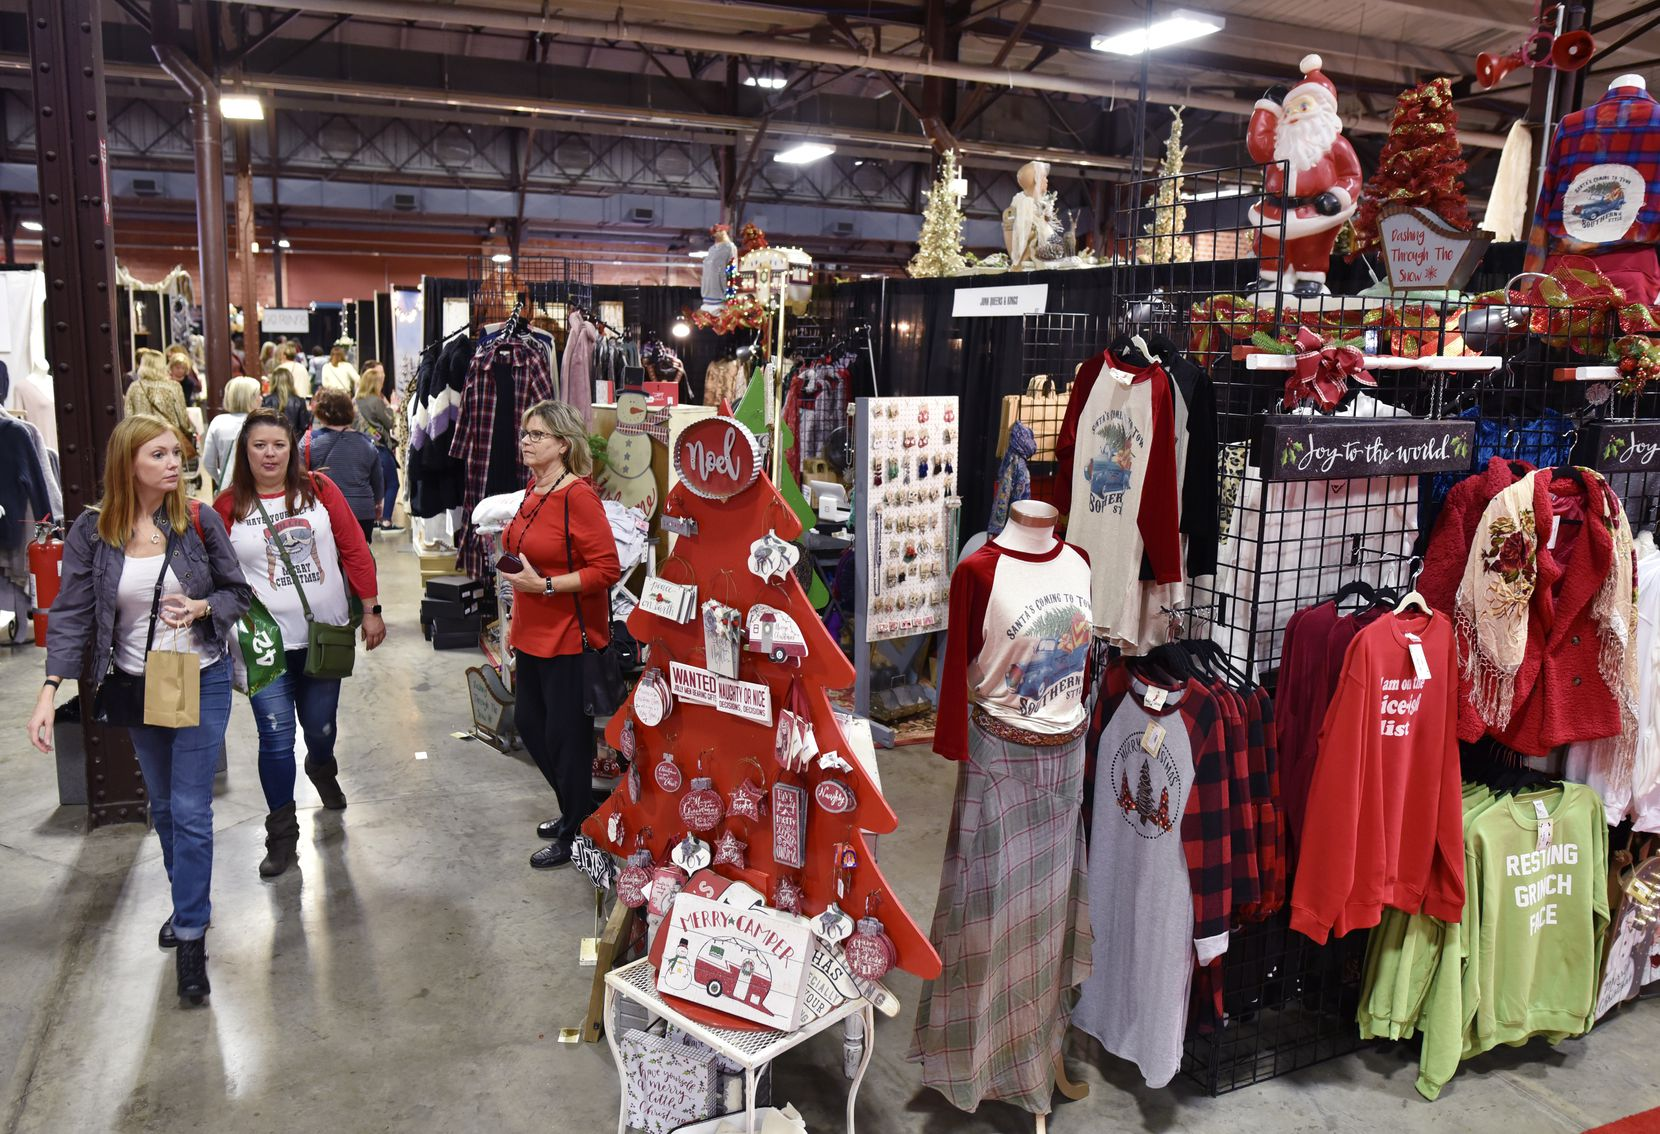 Dallas Christmas Market 2020 Retail Therapy: The big business behind Christmas markets that